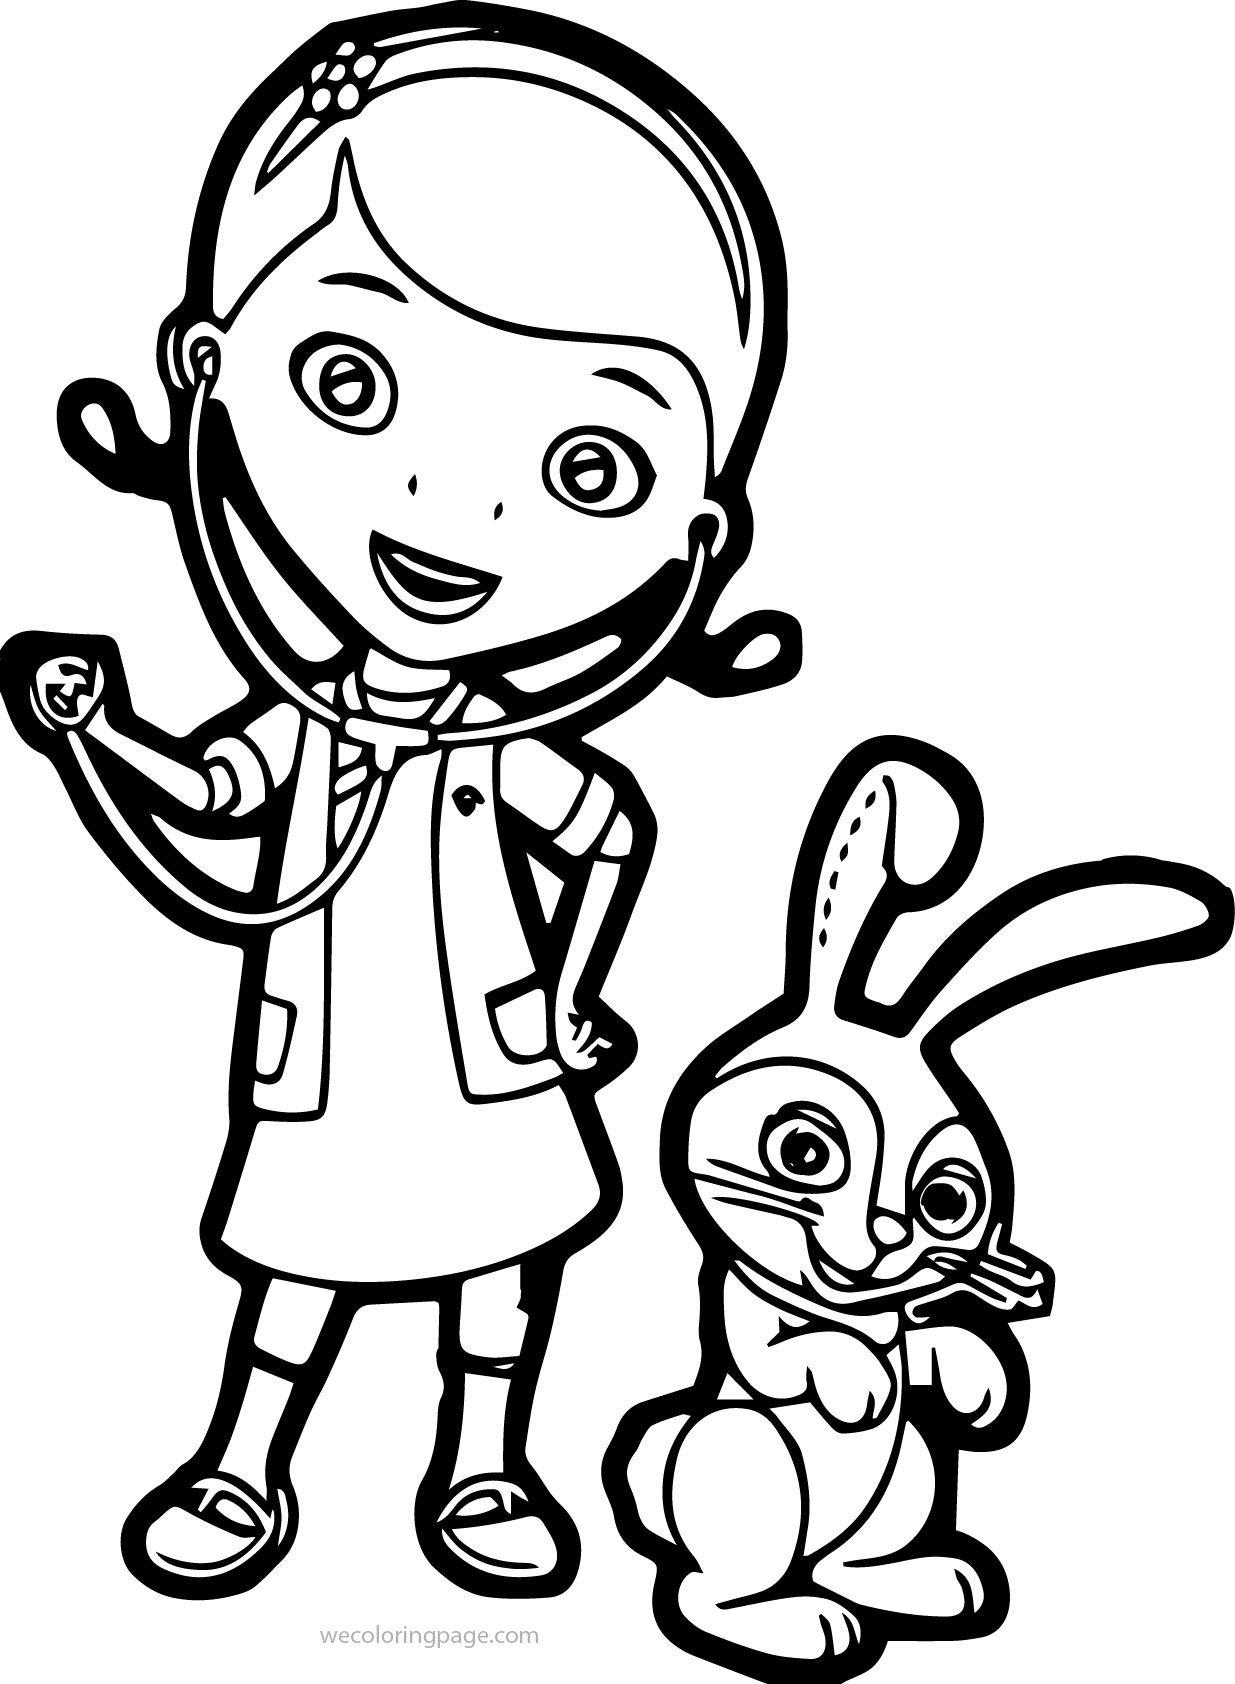 Free printable coloring pages veterinarians - Doc Mcstuffins Pet Vet Bunny Coloring Page